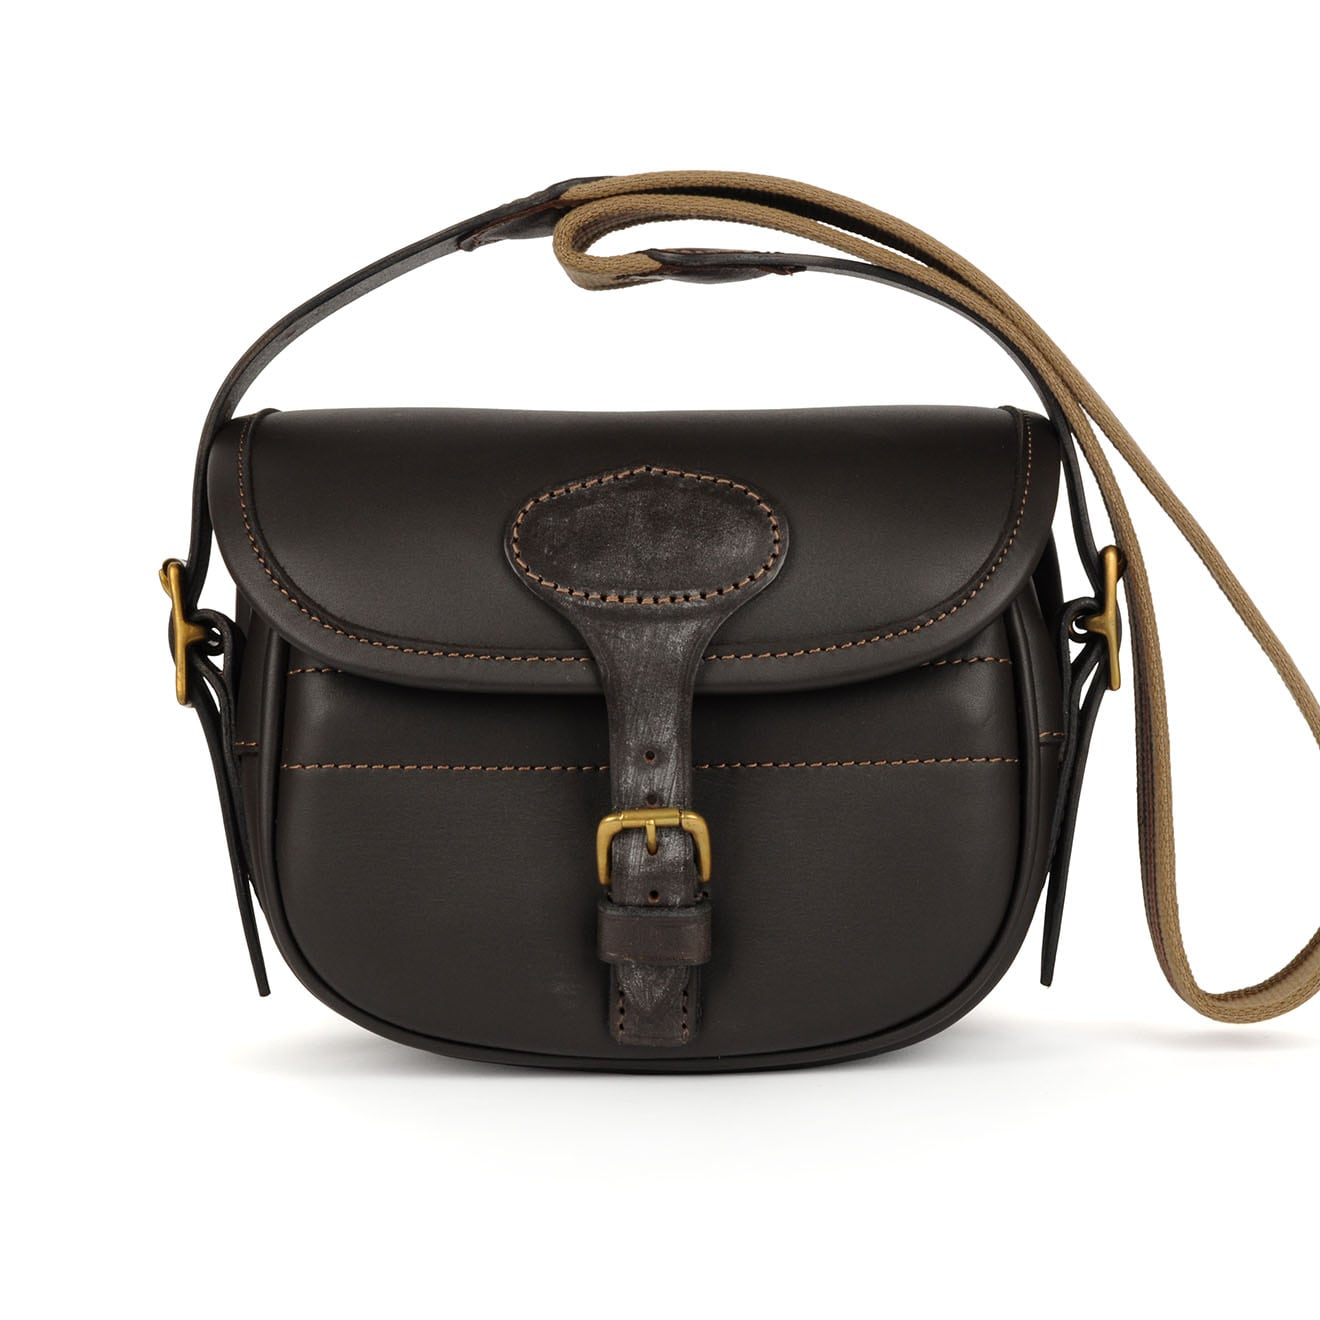 James Purdey Classic Leather Cartridge Bag Brown - The Sporting Lodge